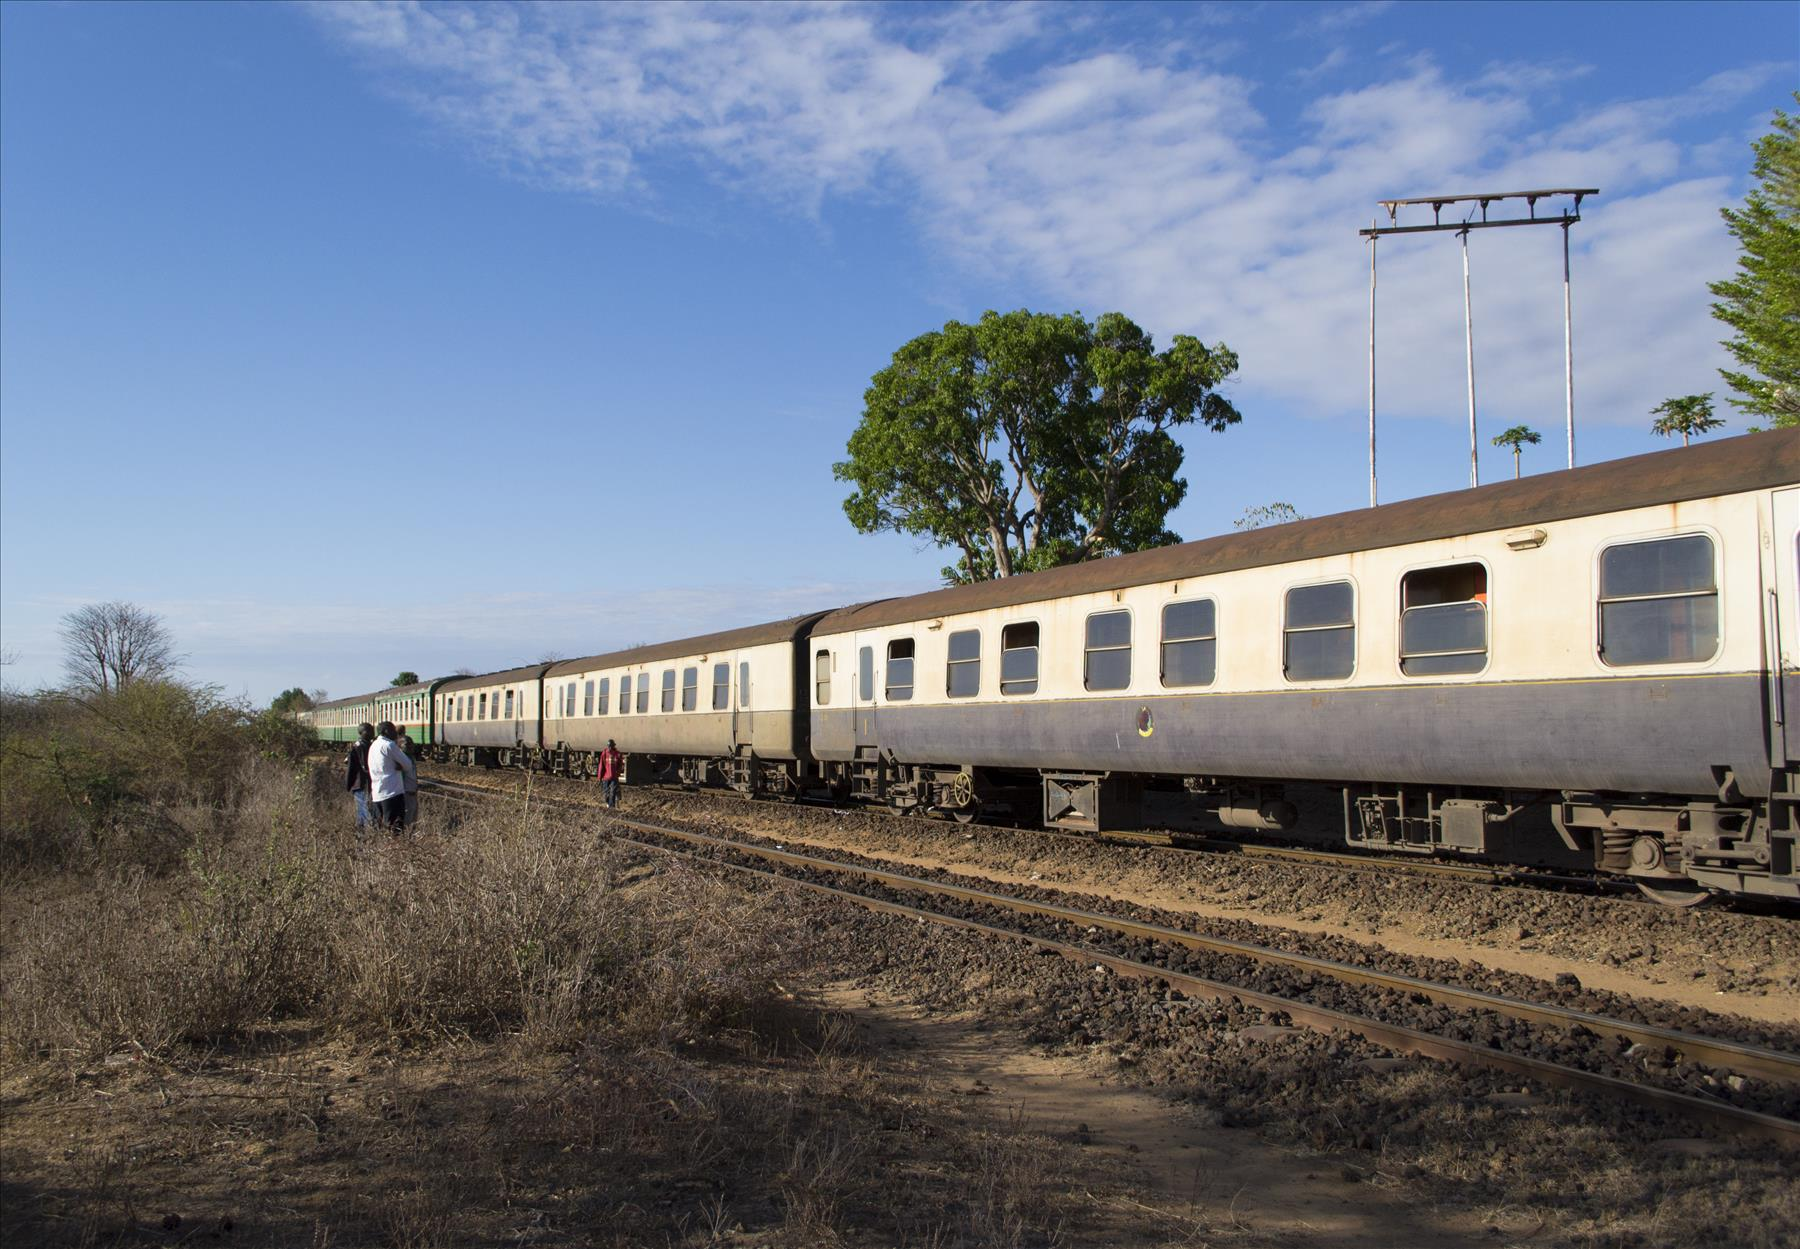 The Lunatic Express: Contribution of the Uganda Railway to the port and socio-economic development of Kenya and East Africa